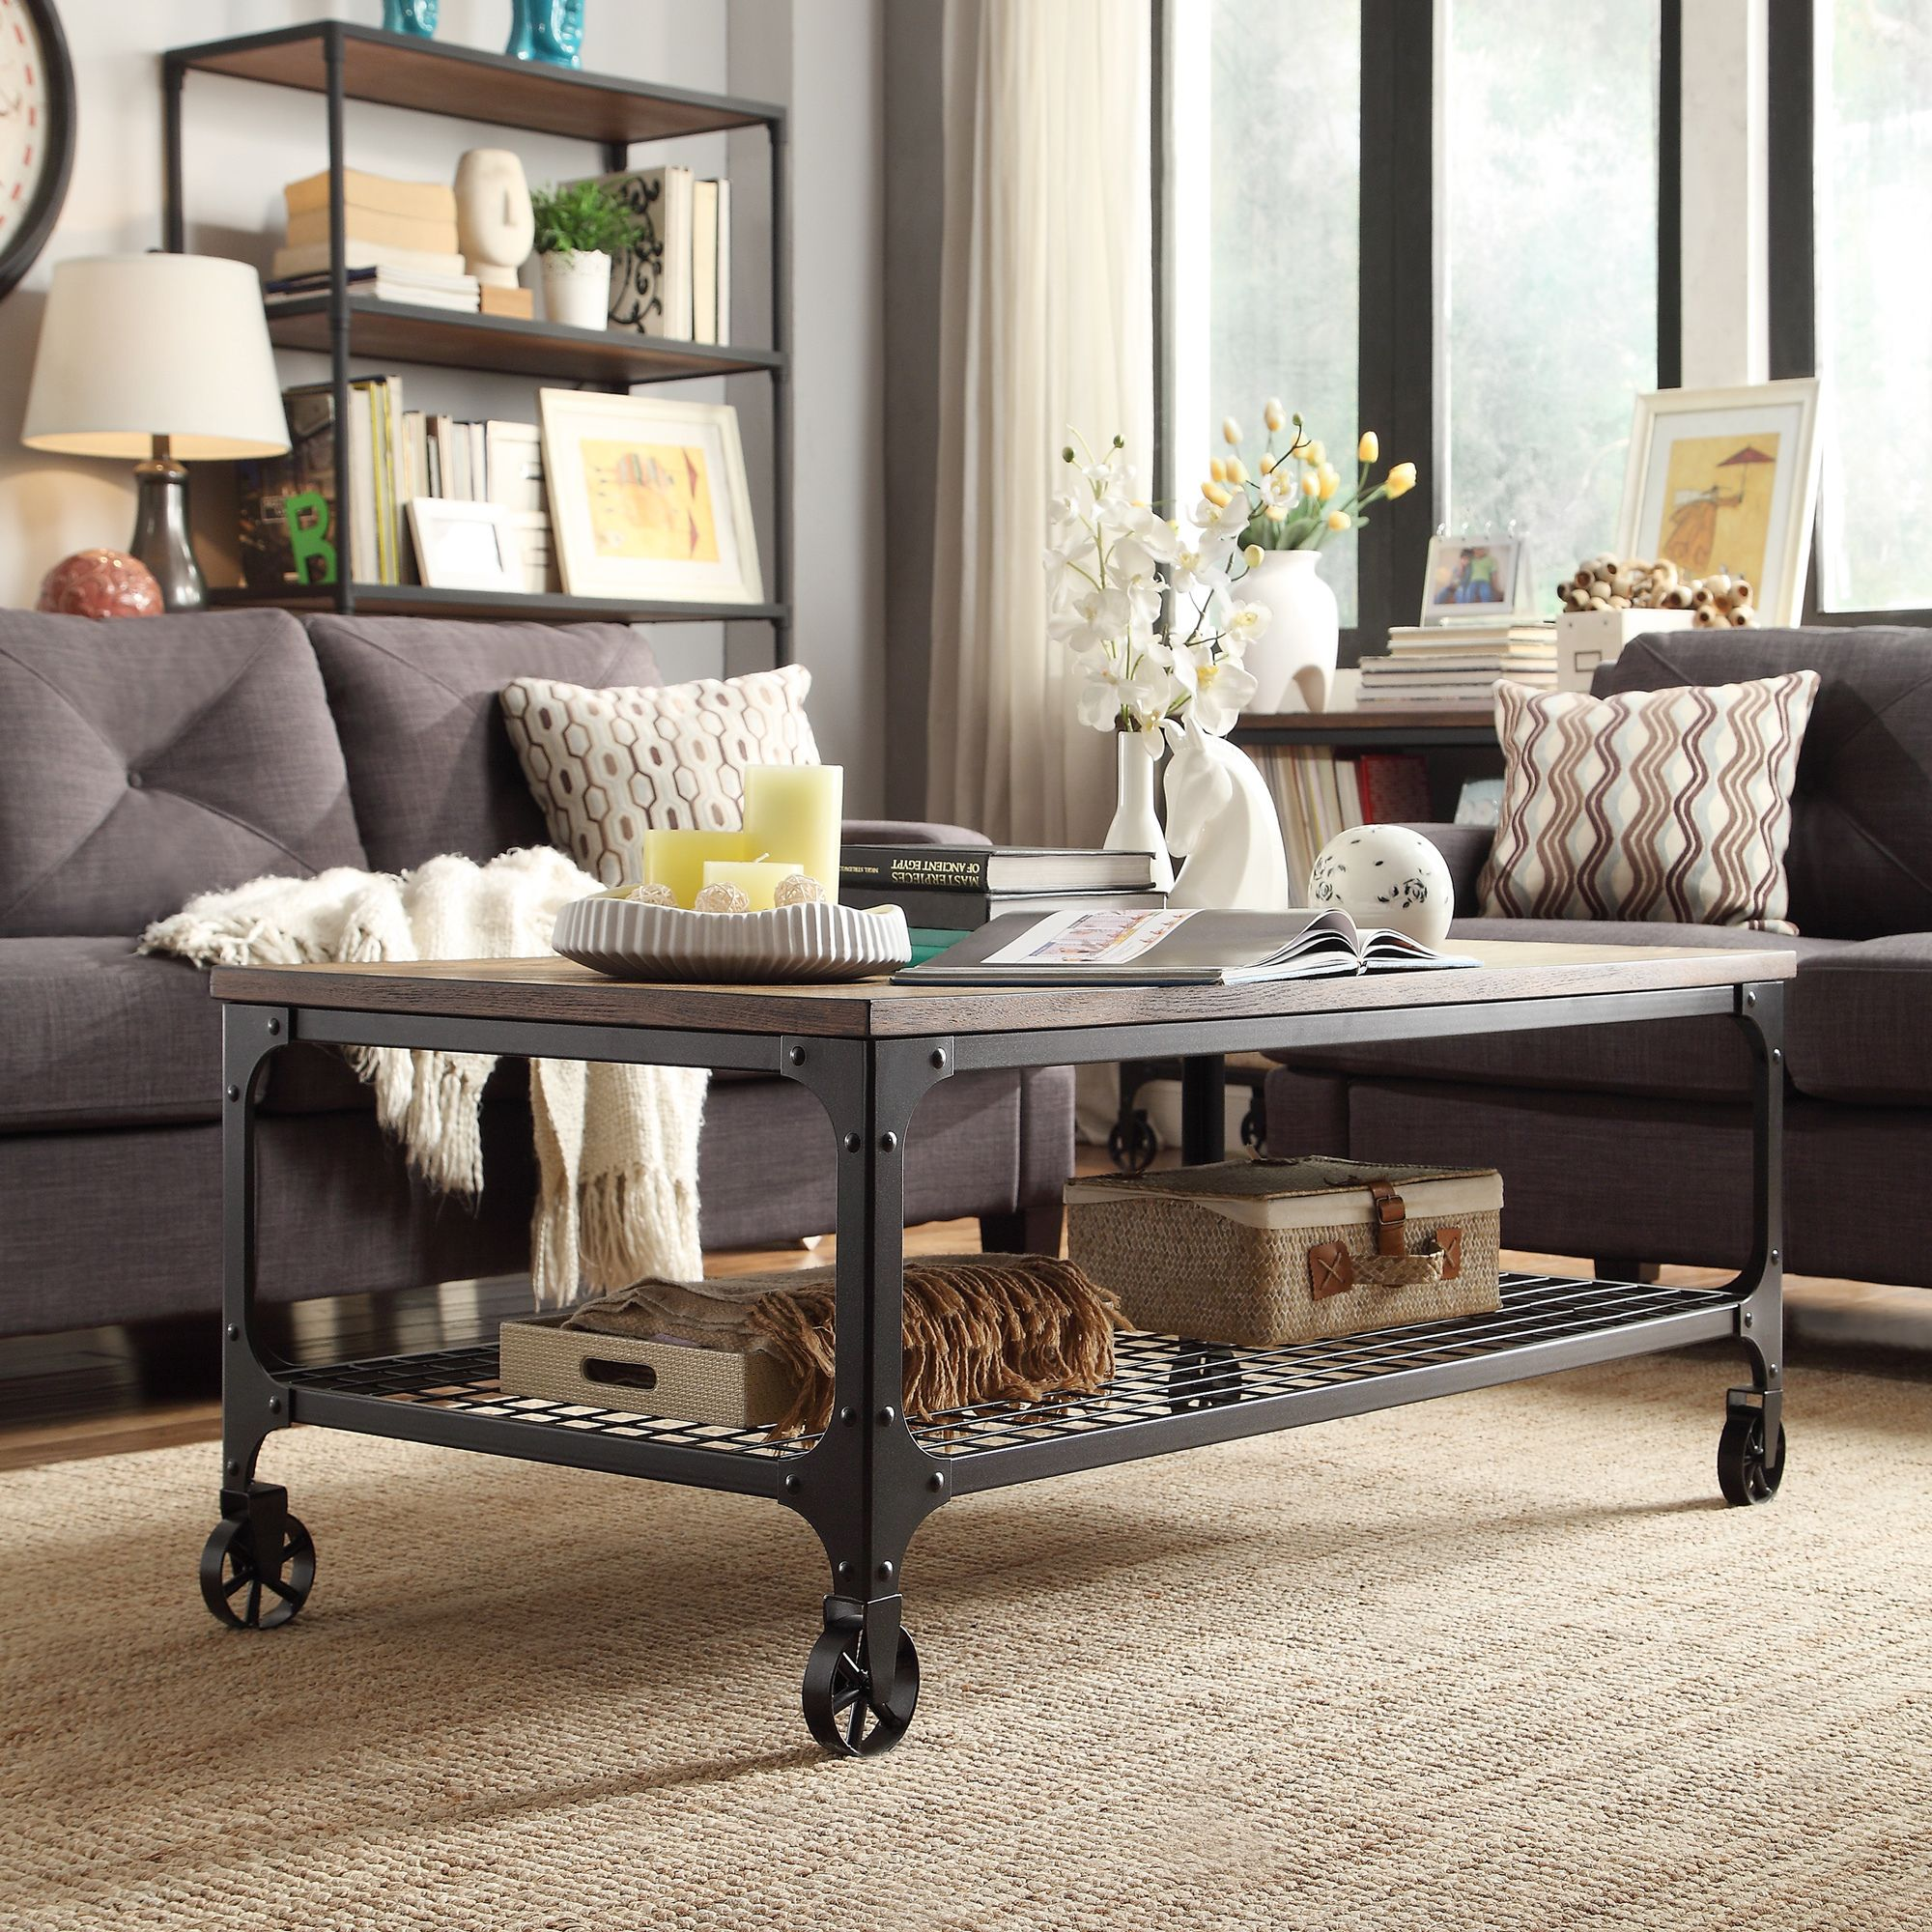 Myra Vintage Industrial Modern Rustic End Table by iNSPIRE Q Classic by  iNSPIRE Q